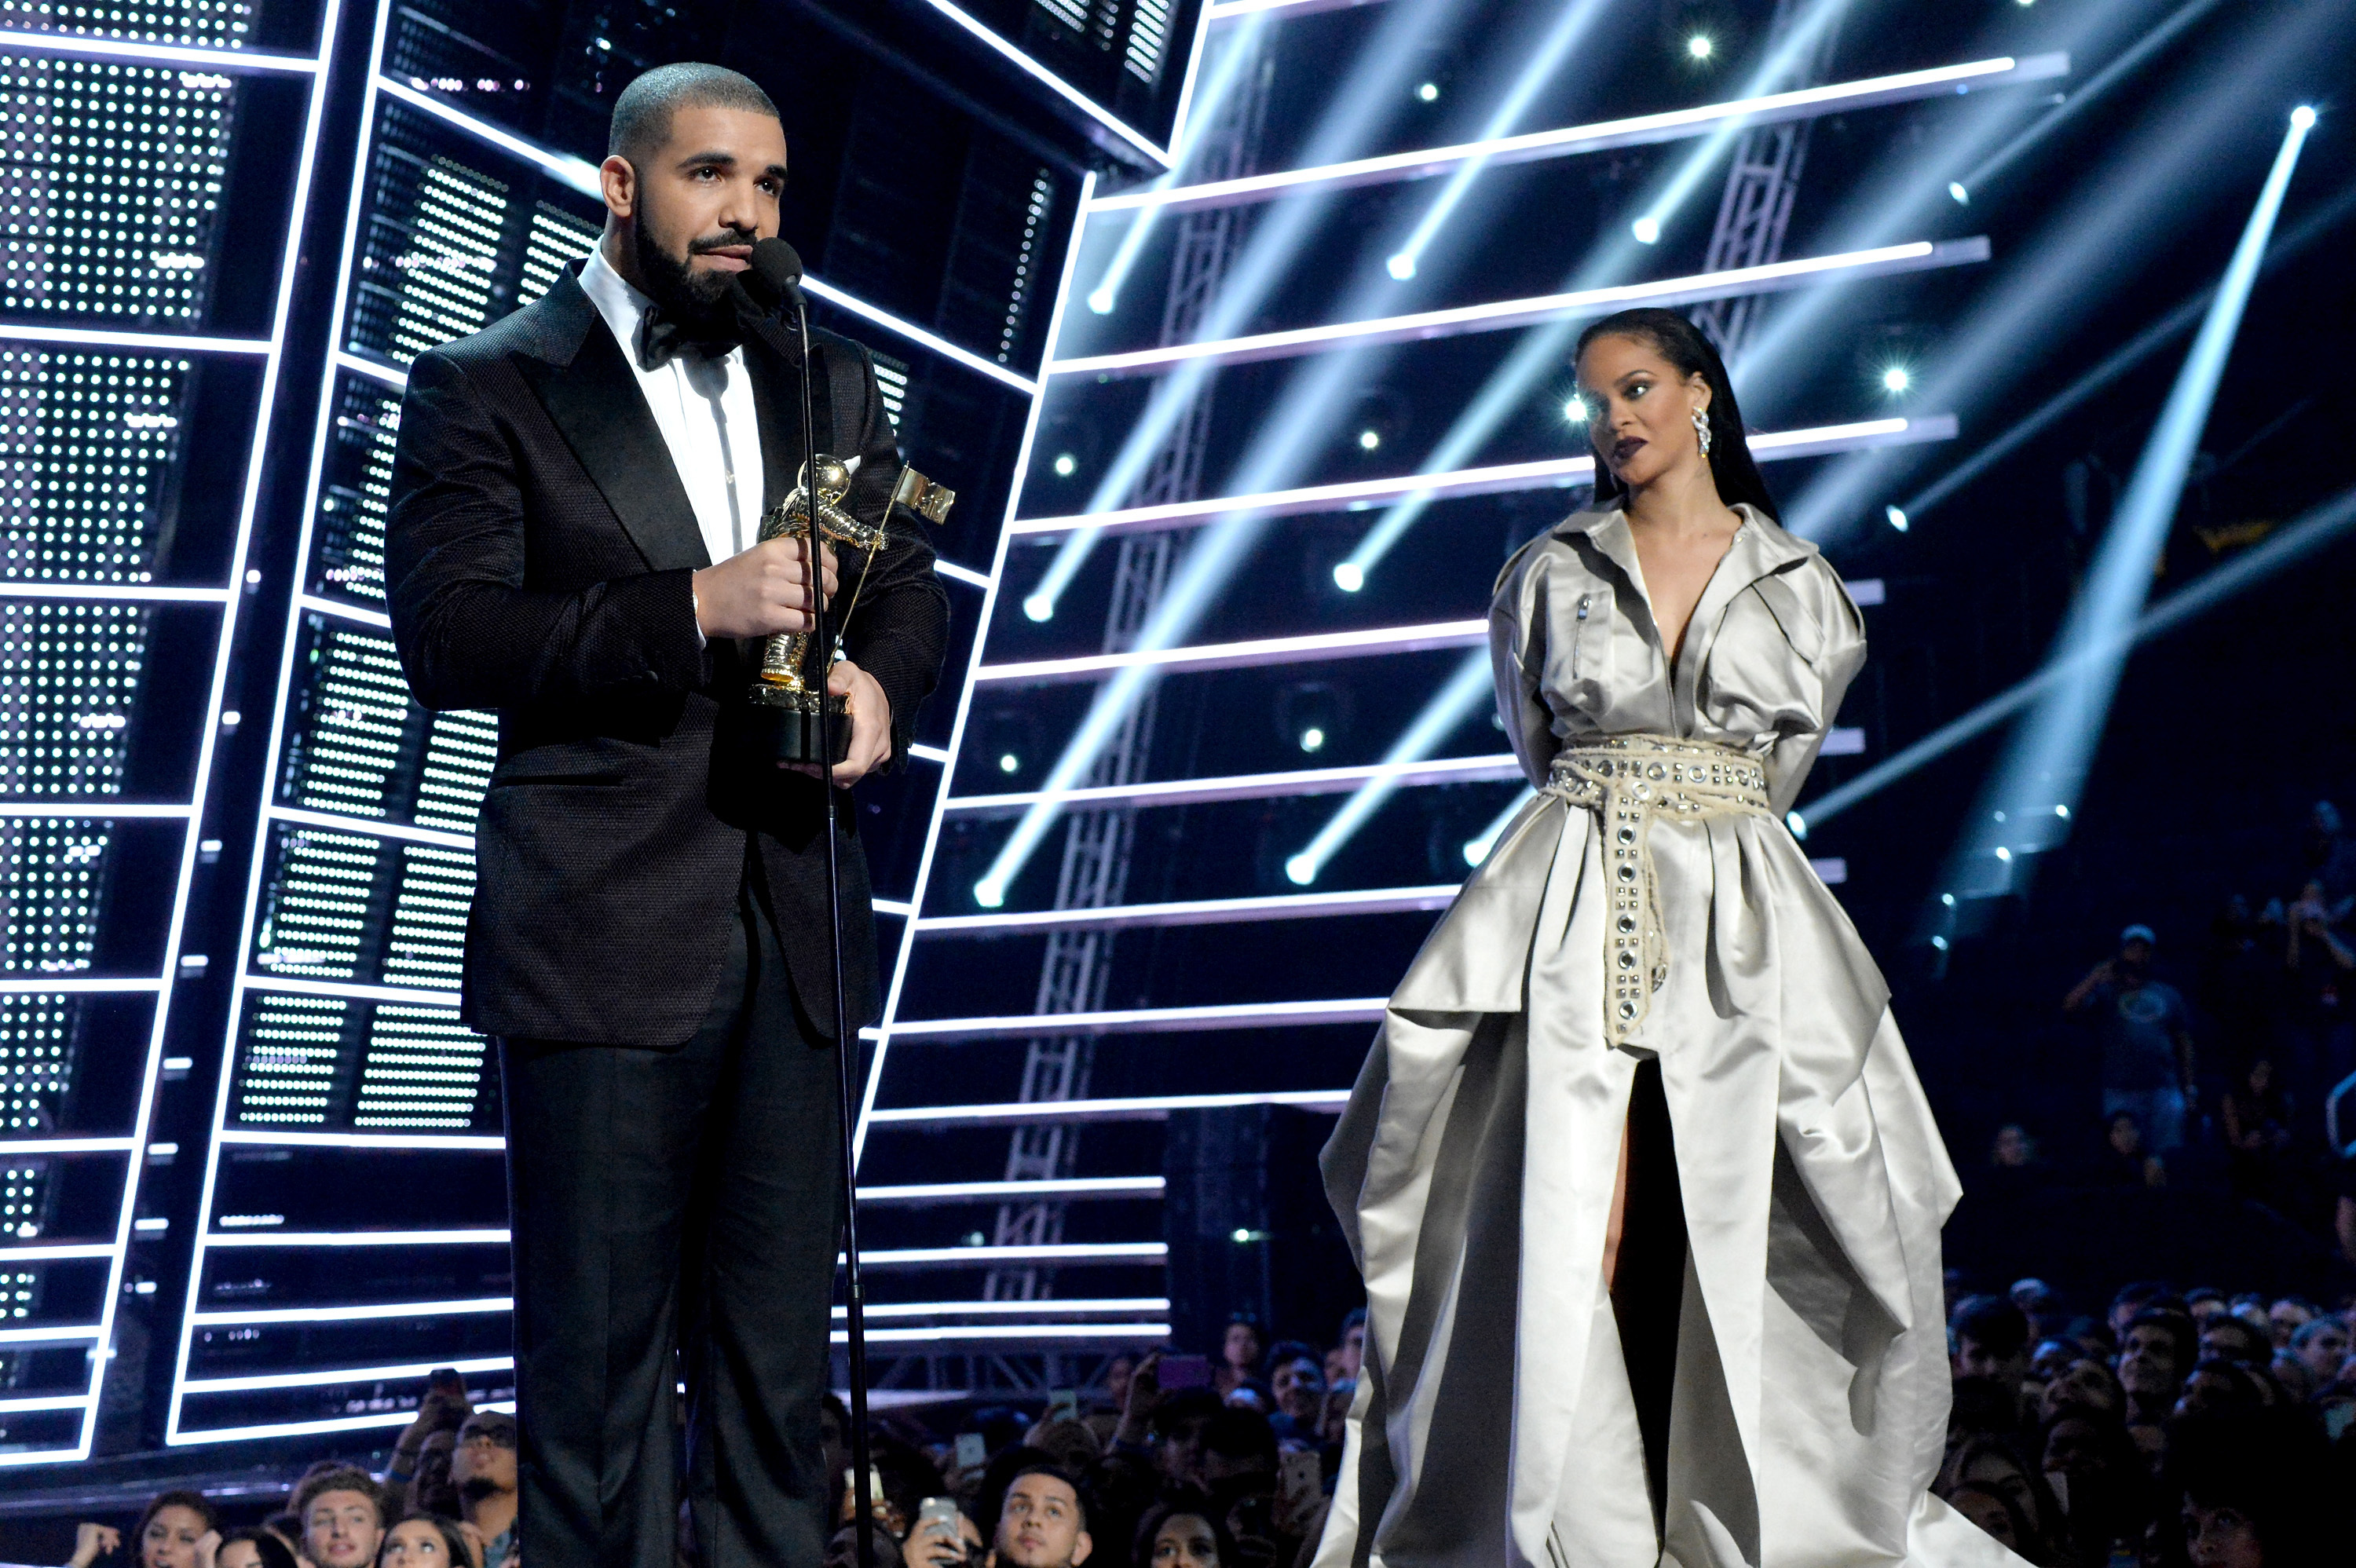 Drake presents the Michael Jackson Video Vanguard Award to recipient Rihanna onstage during the 2016 MTV Video Music Awards at Madison Square Garden in New York City on Aug. 28, 2016.